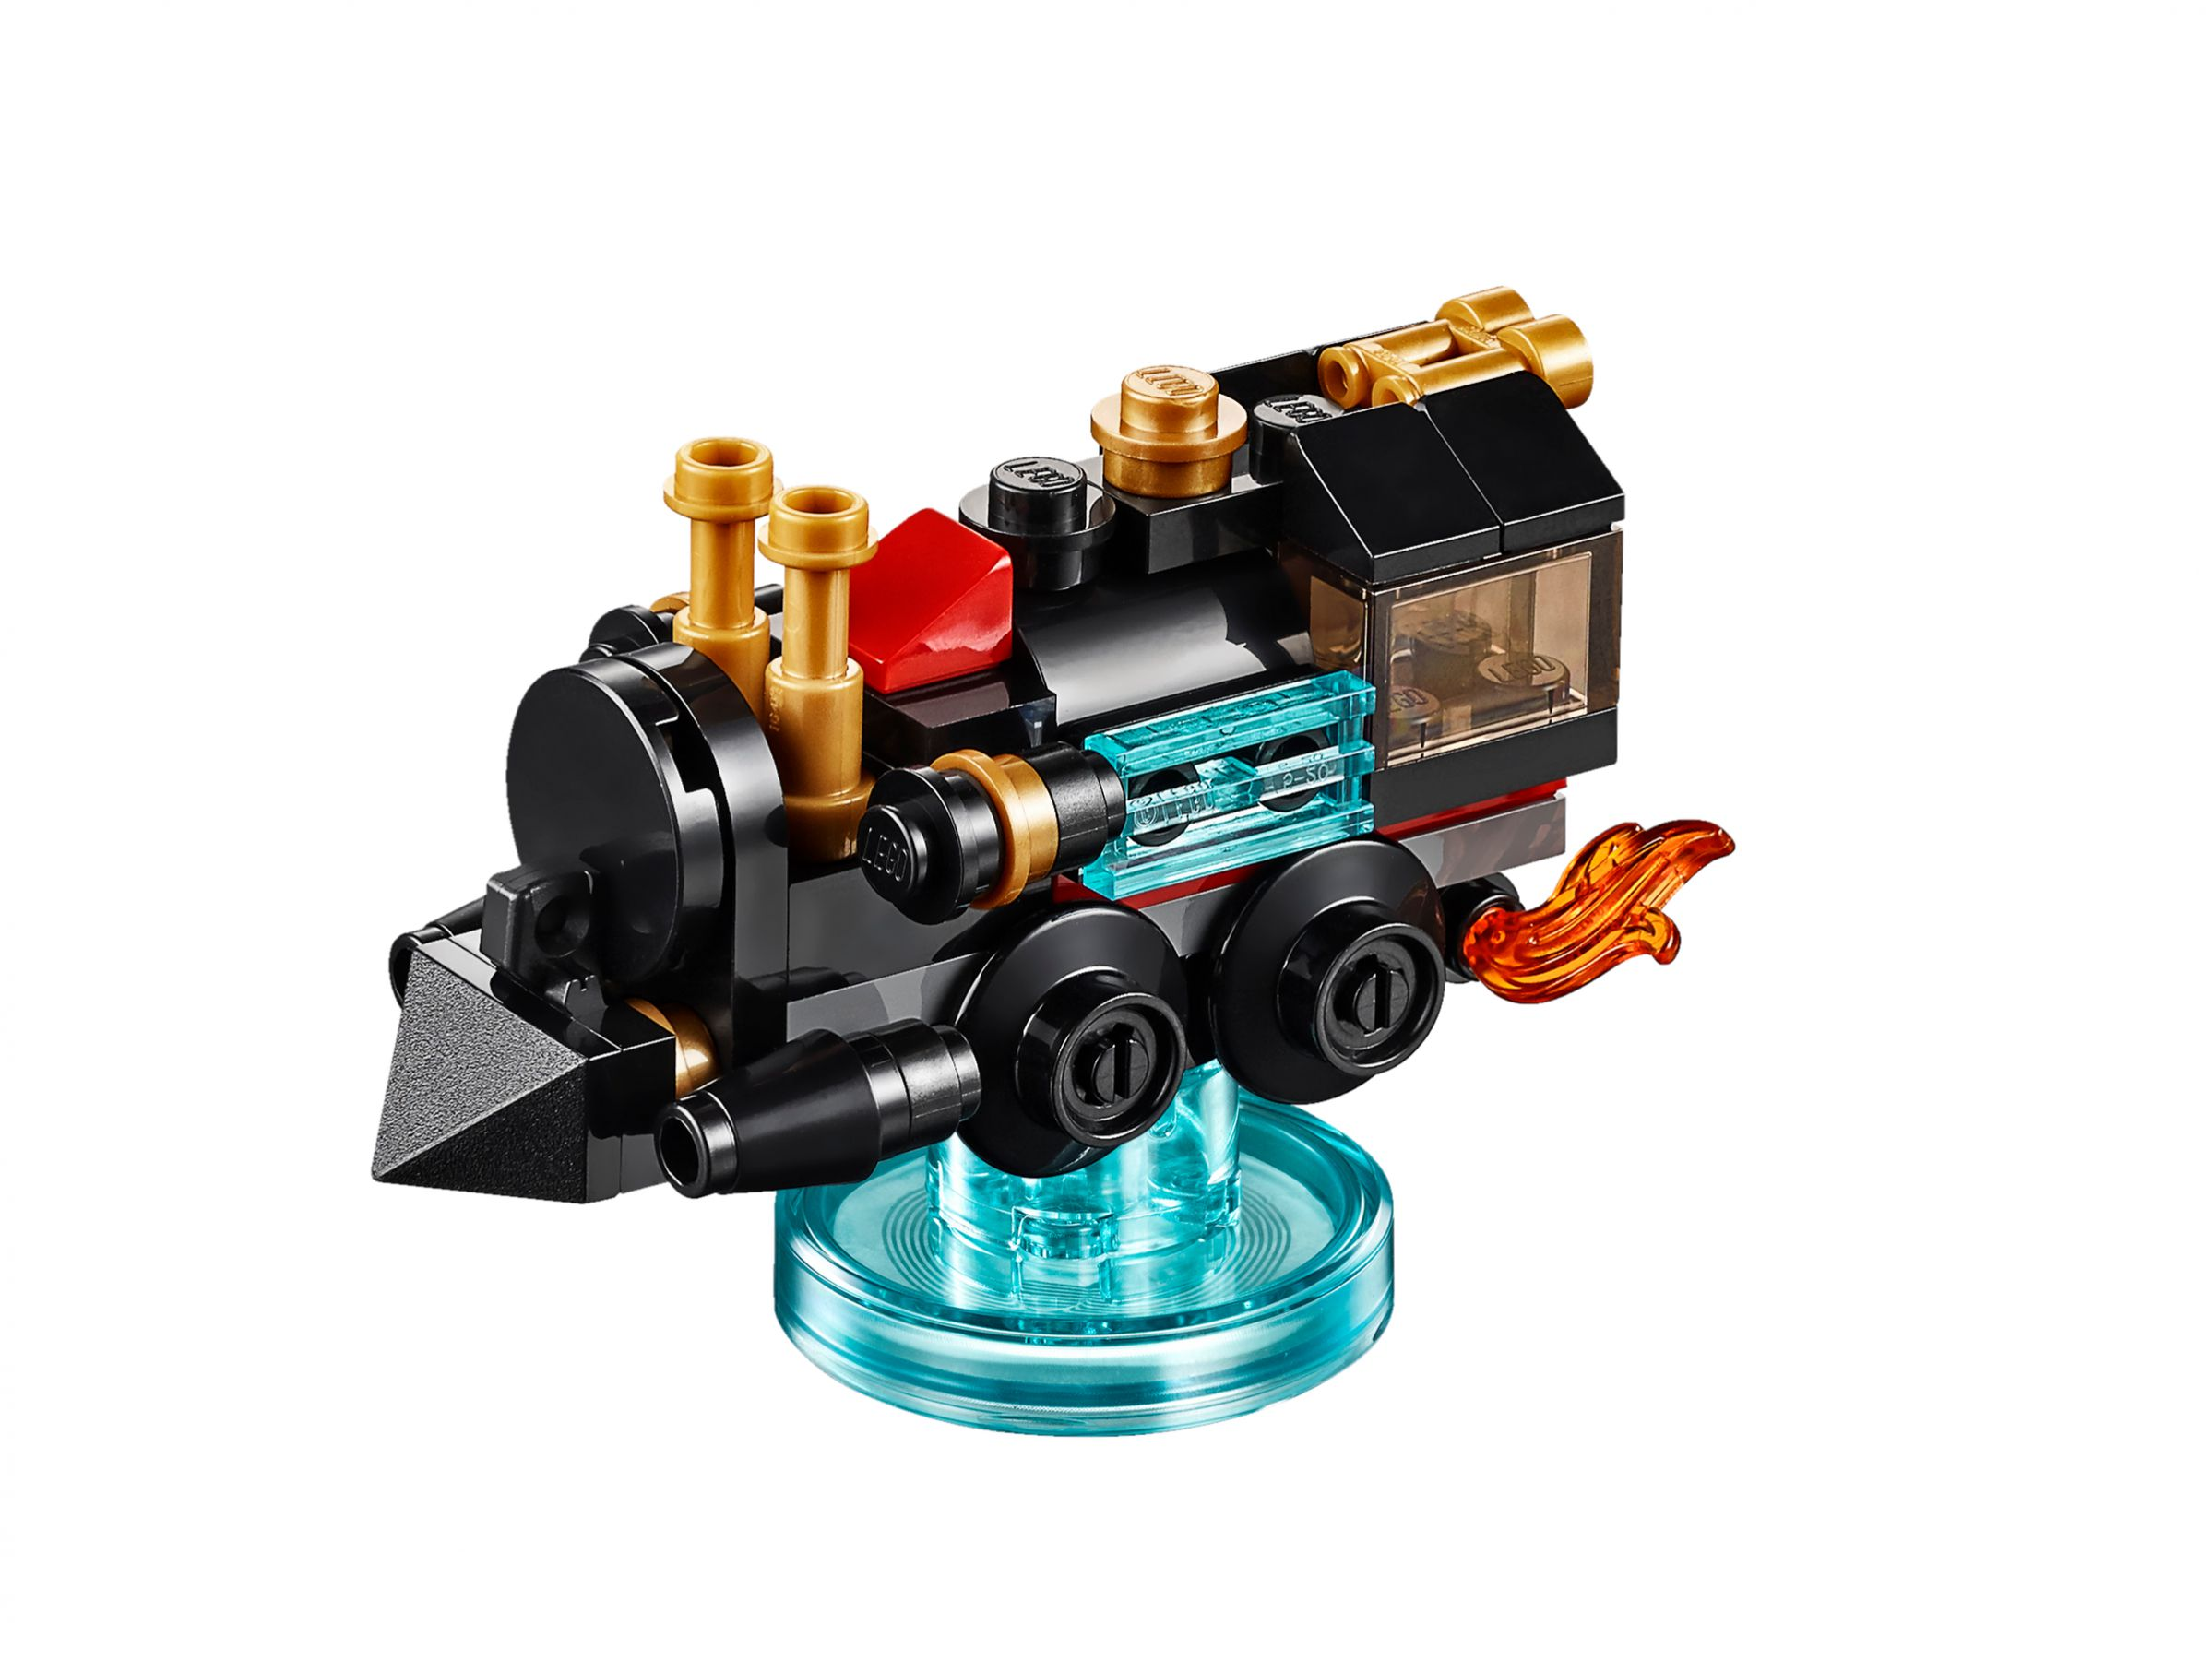 LEGO Dimensions 71230 Fun Pack Doc Brown LEGO_71230_alt3.jpg